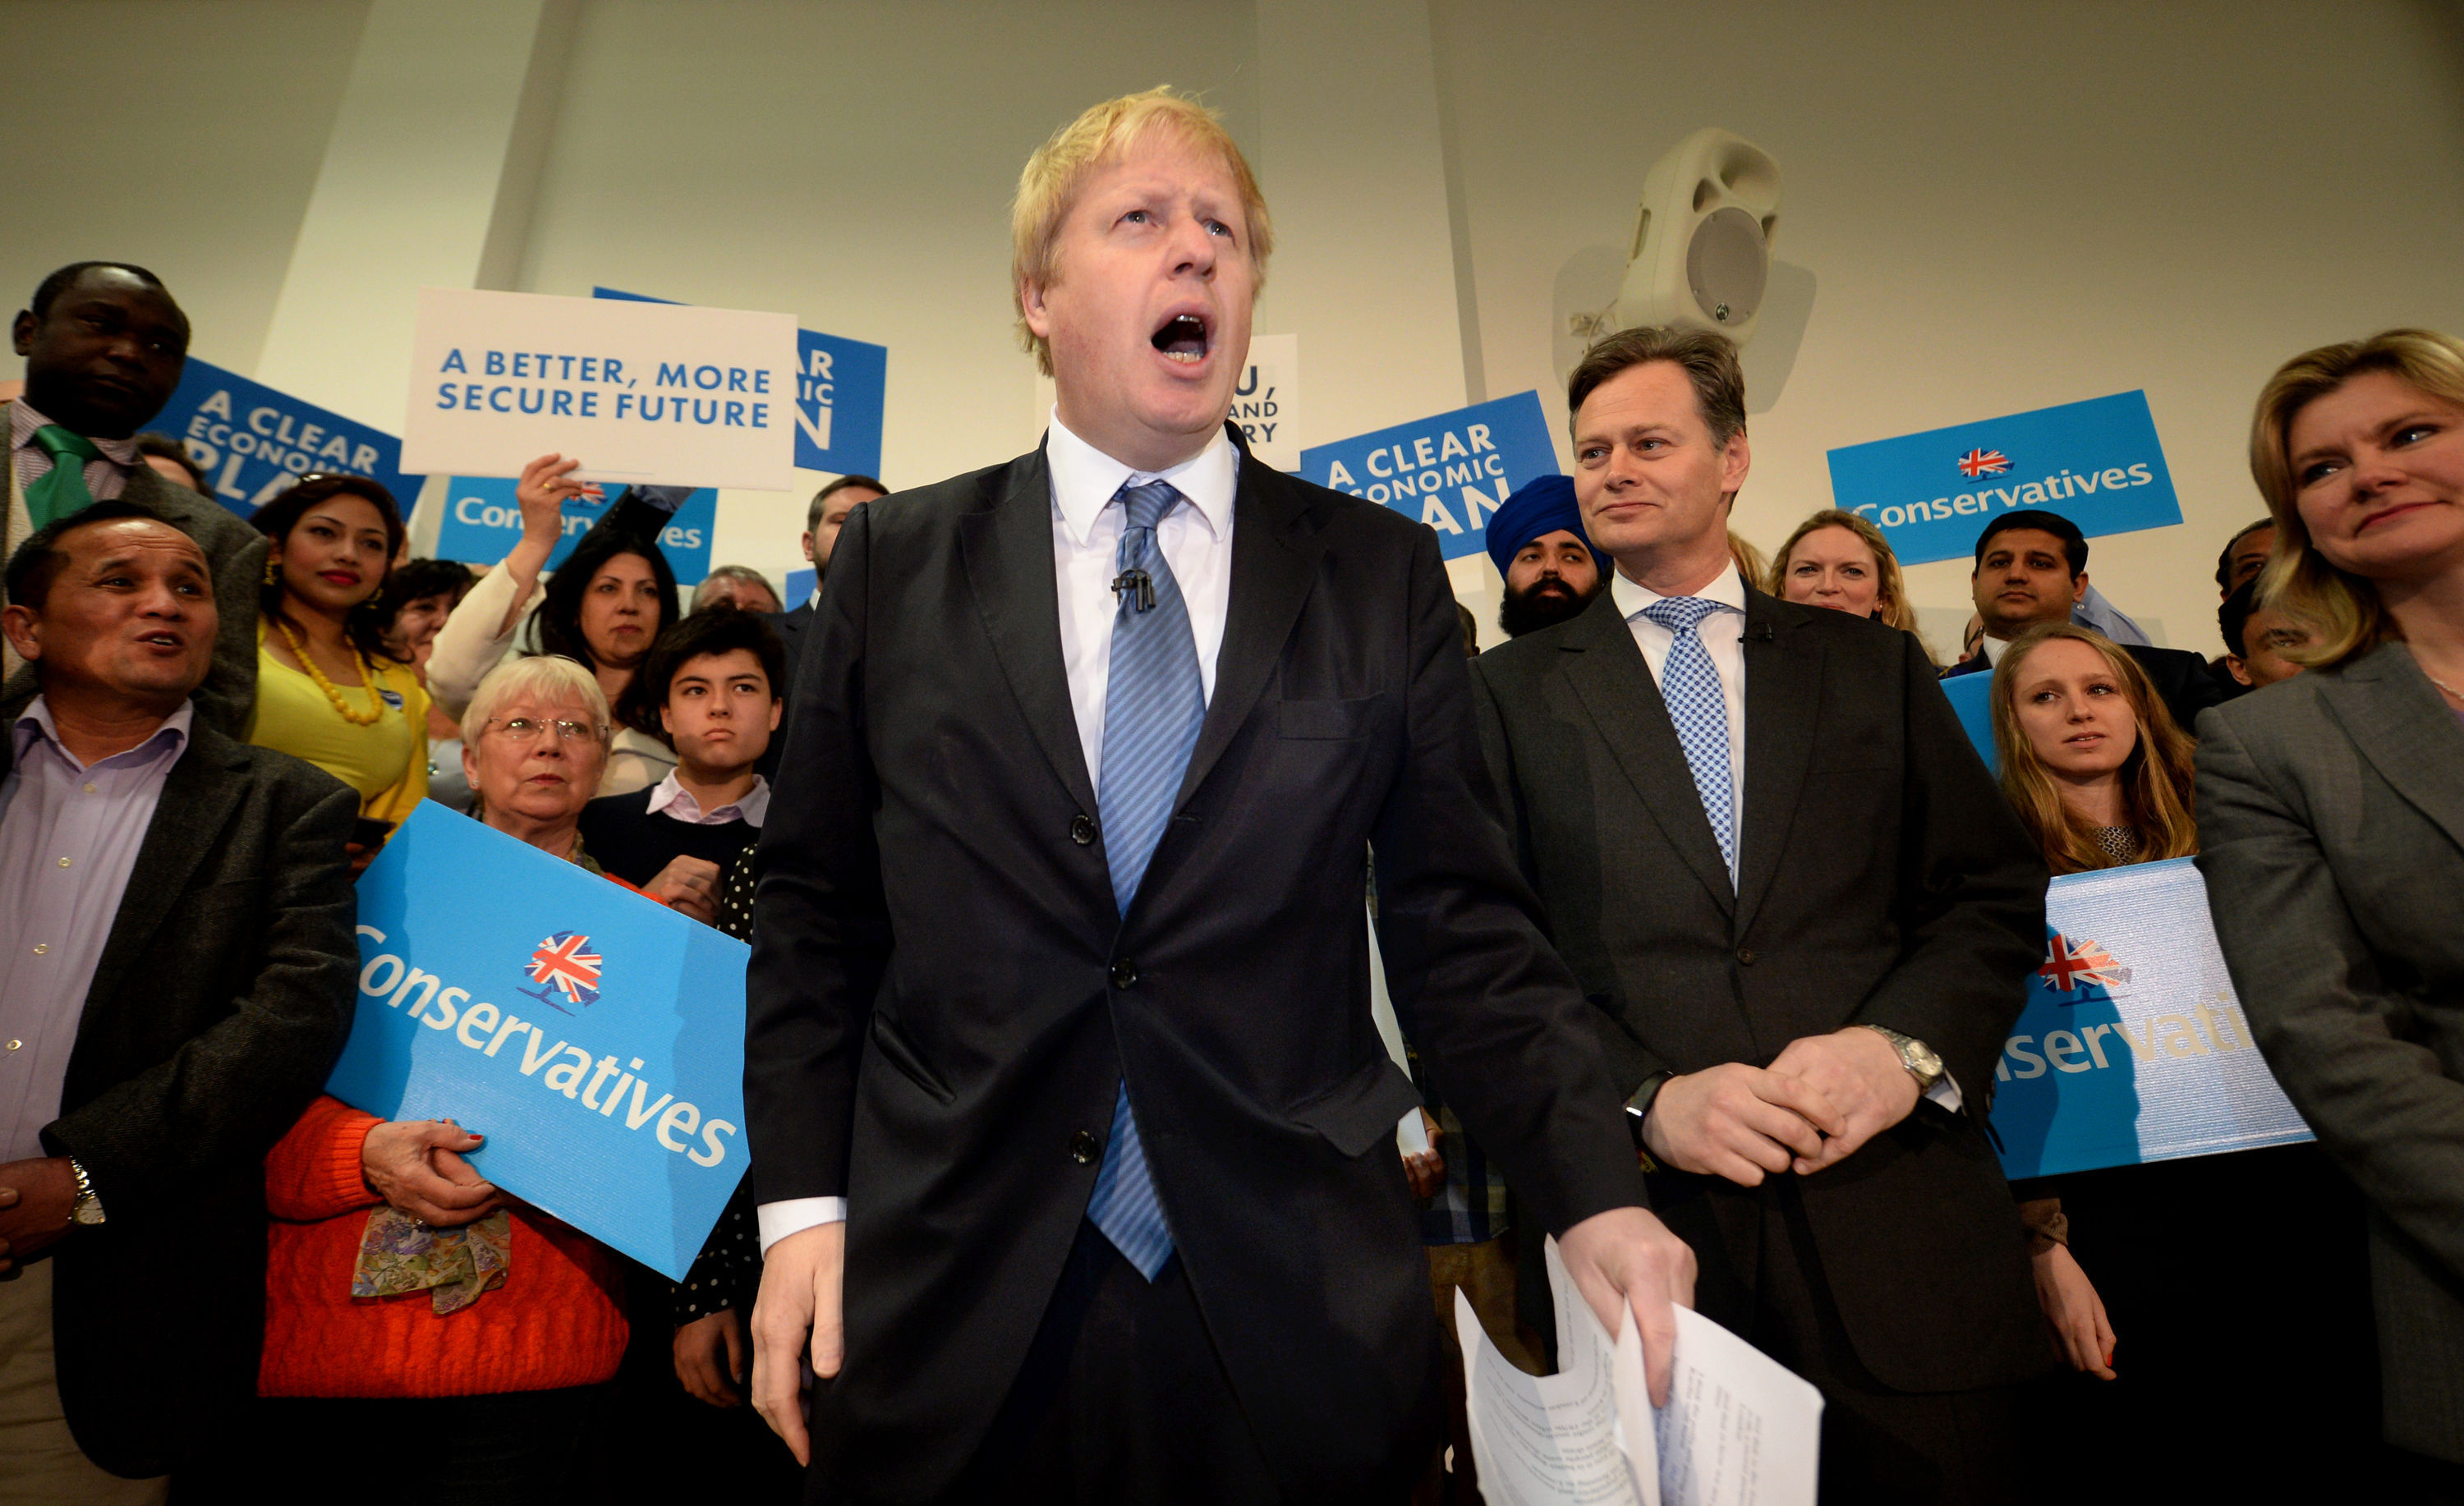 Mayor of London Boris Johnson launches the Conservative London campaign at Hartley Hall in Mill Hill, London.